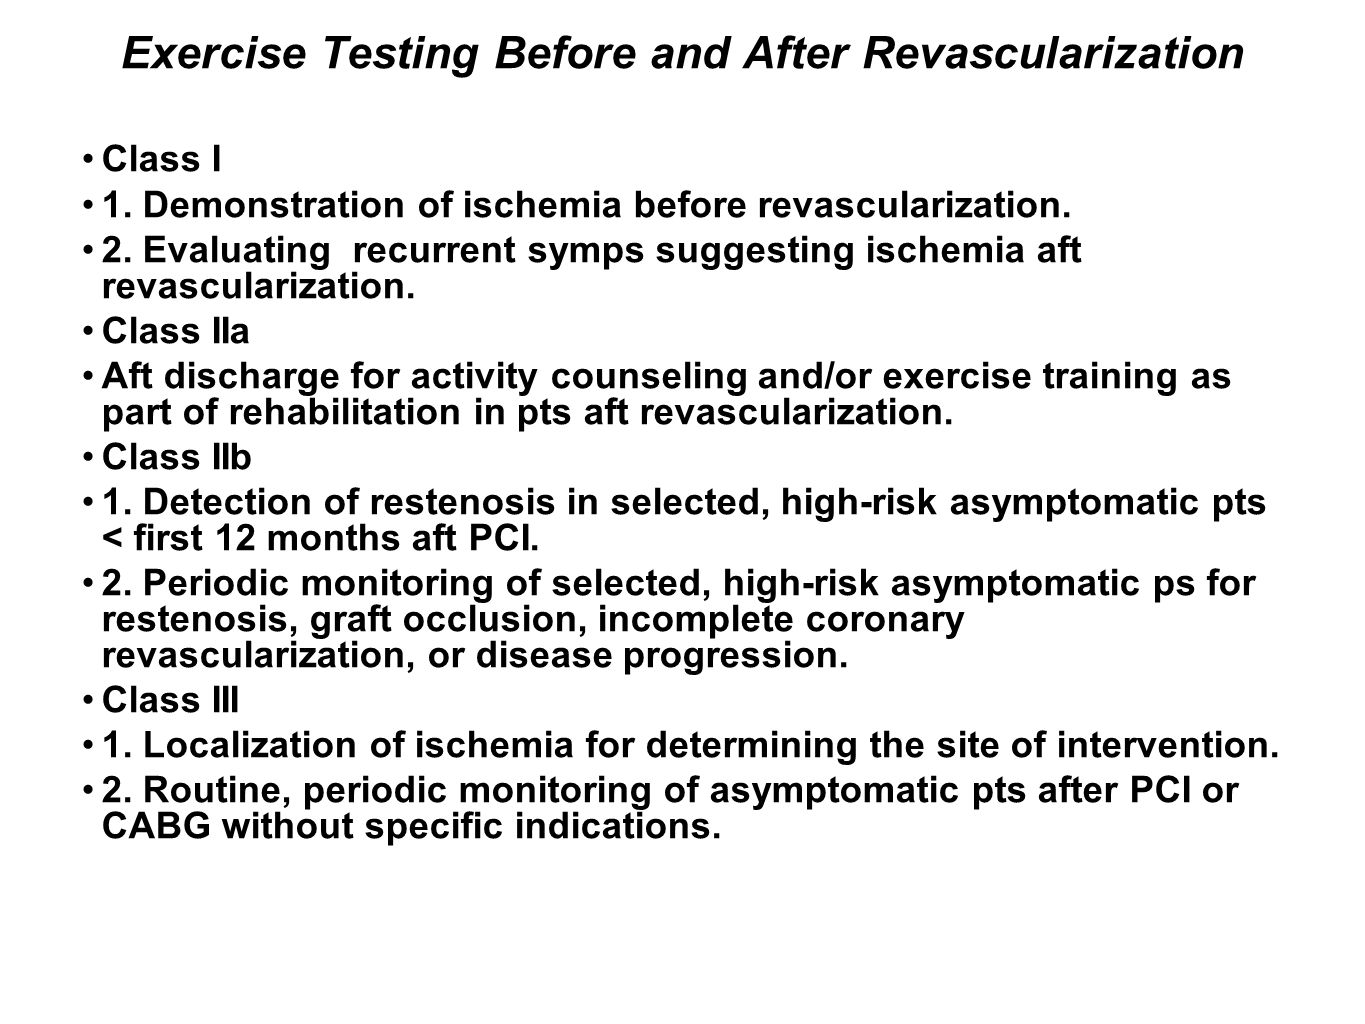 Exercise Testing Before and After Revascularization